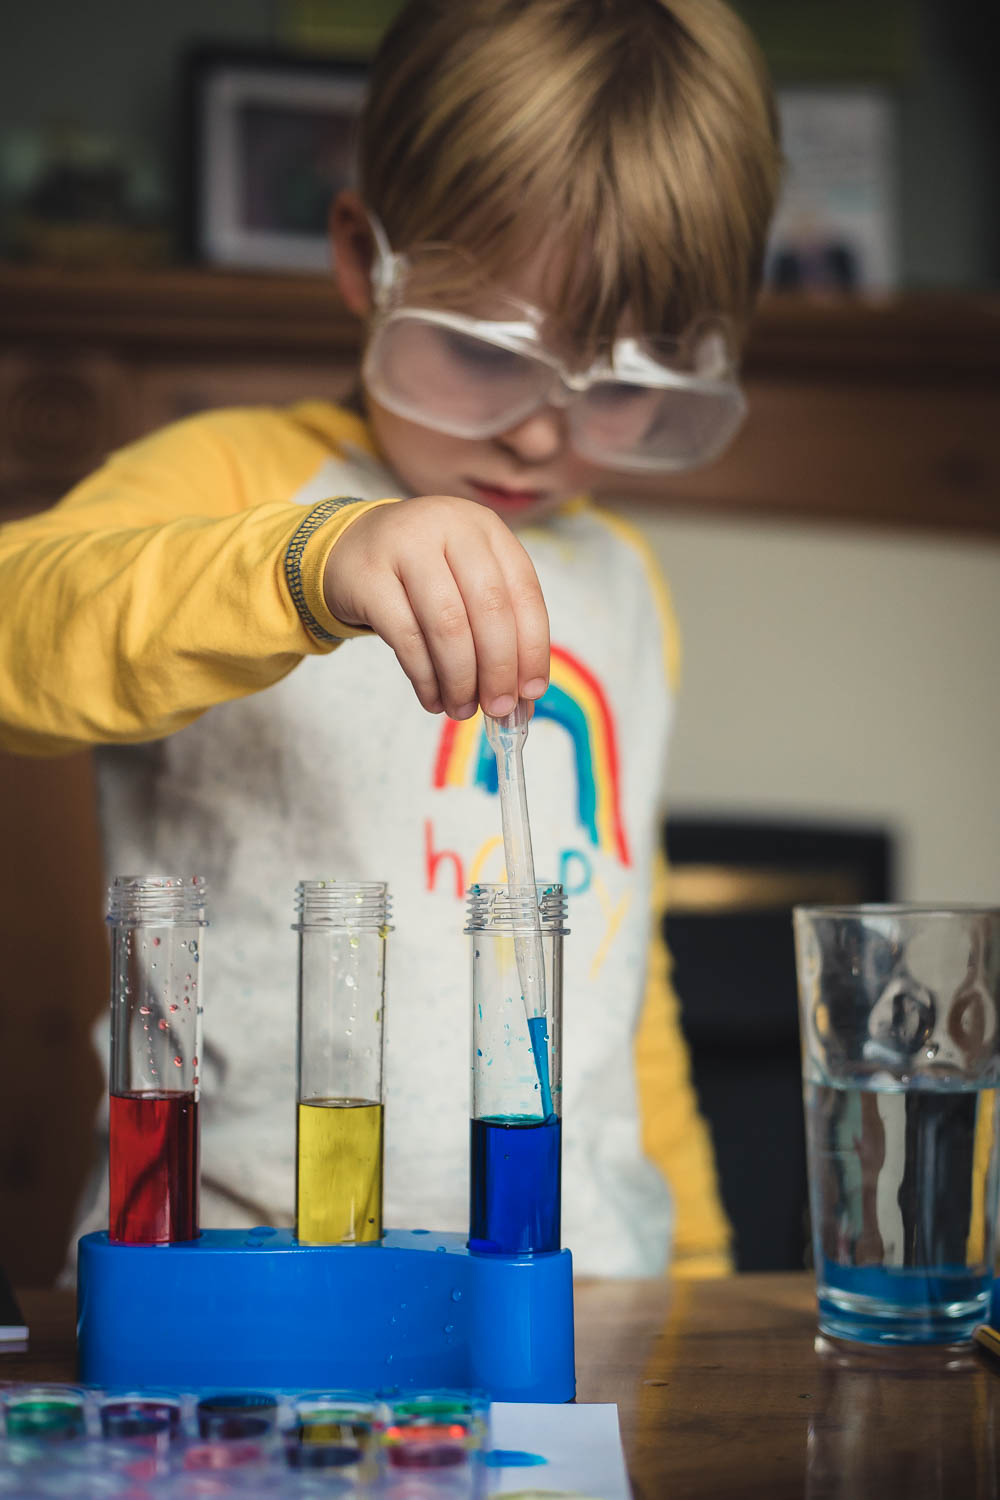 Pickle concentrating on mixing colours in a Rainbow Lab Kit experiment